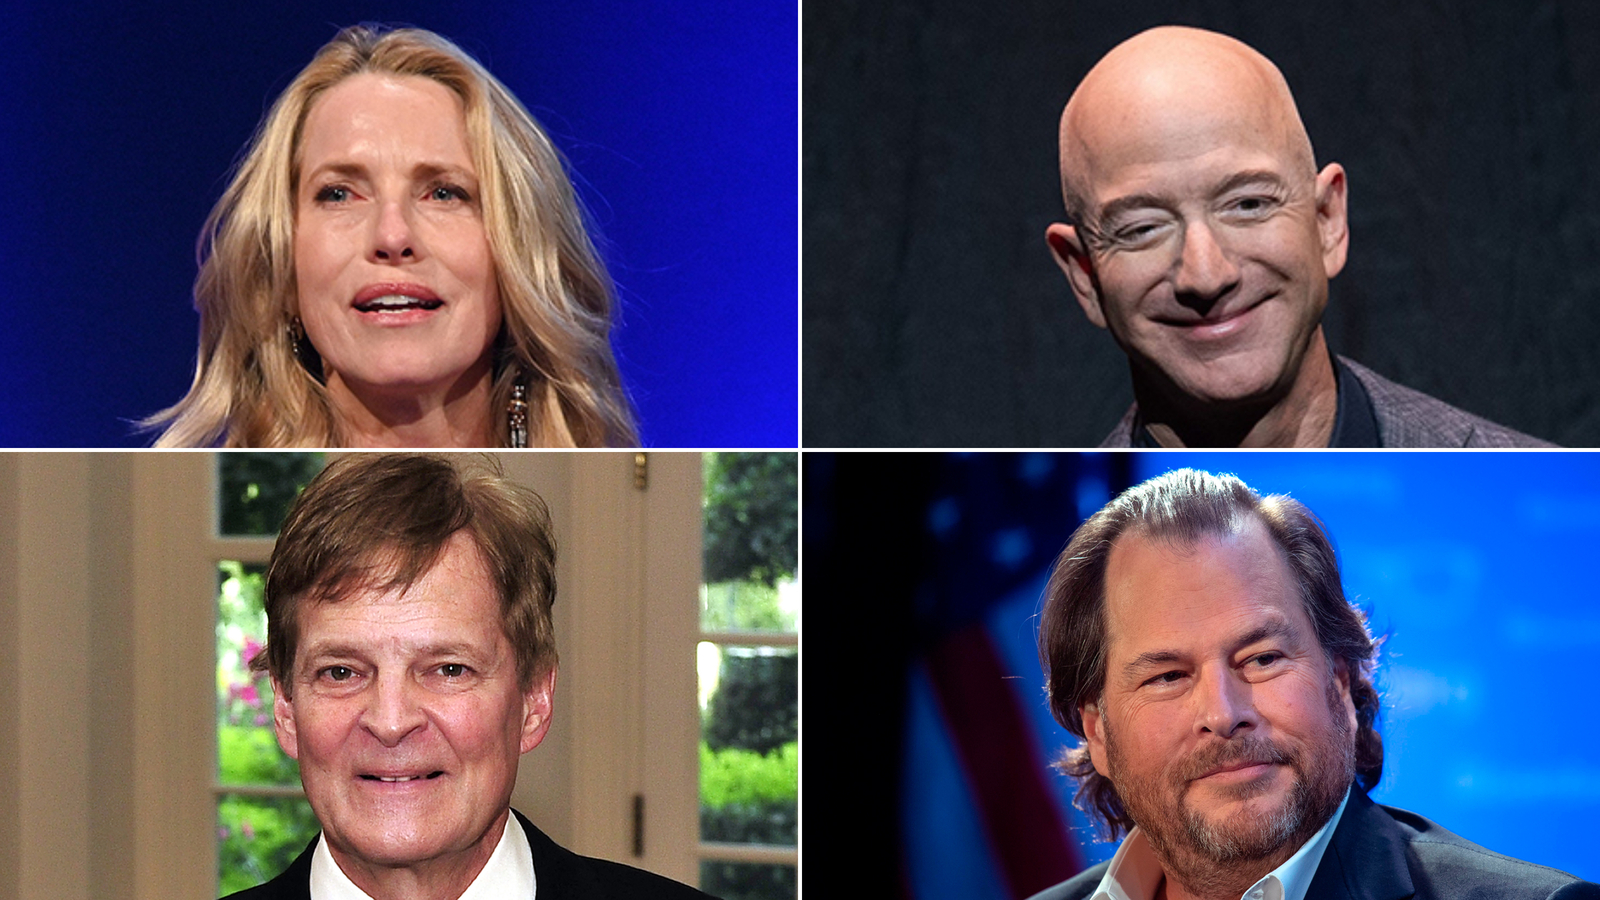 Being owned by a billionaire is a struggling newsroom's dream. But it can turn into a nightmare